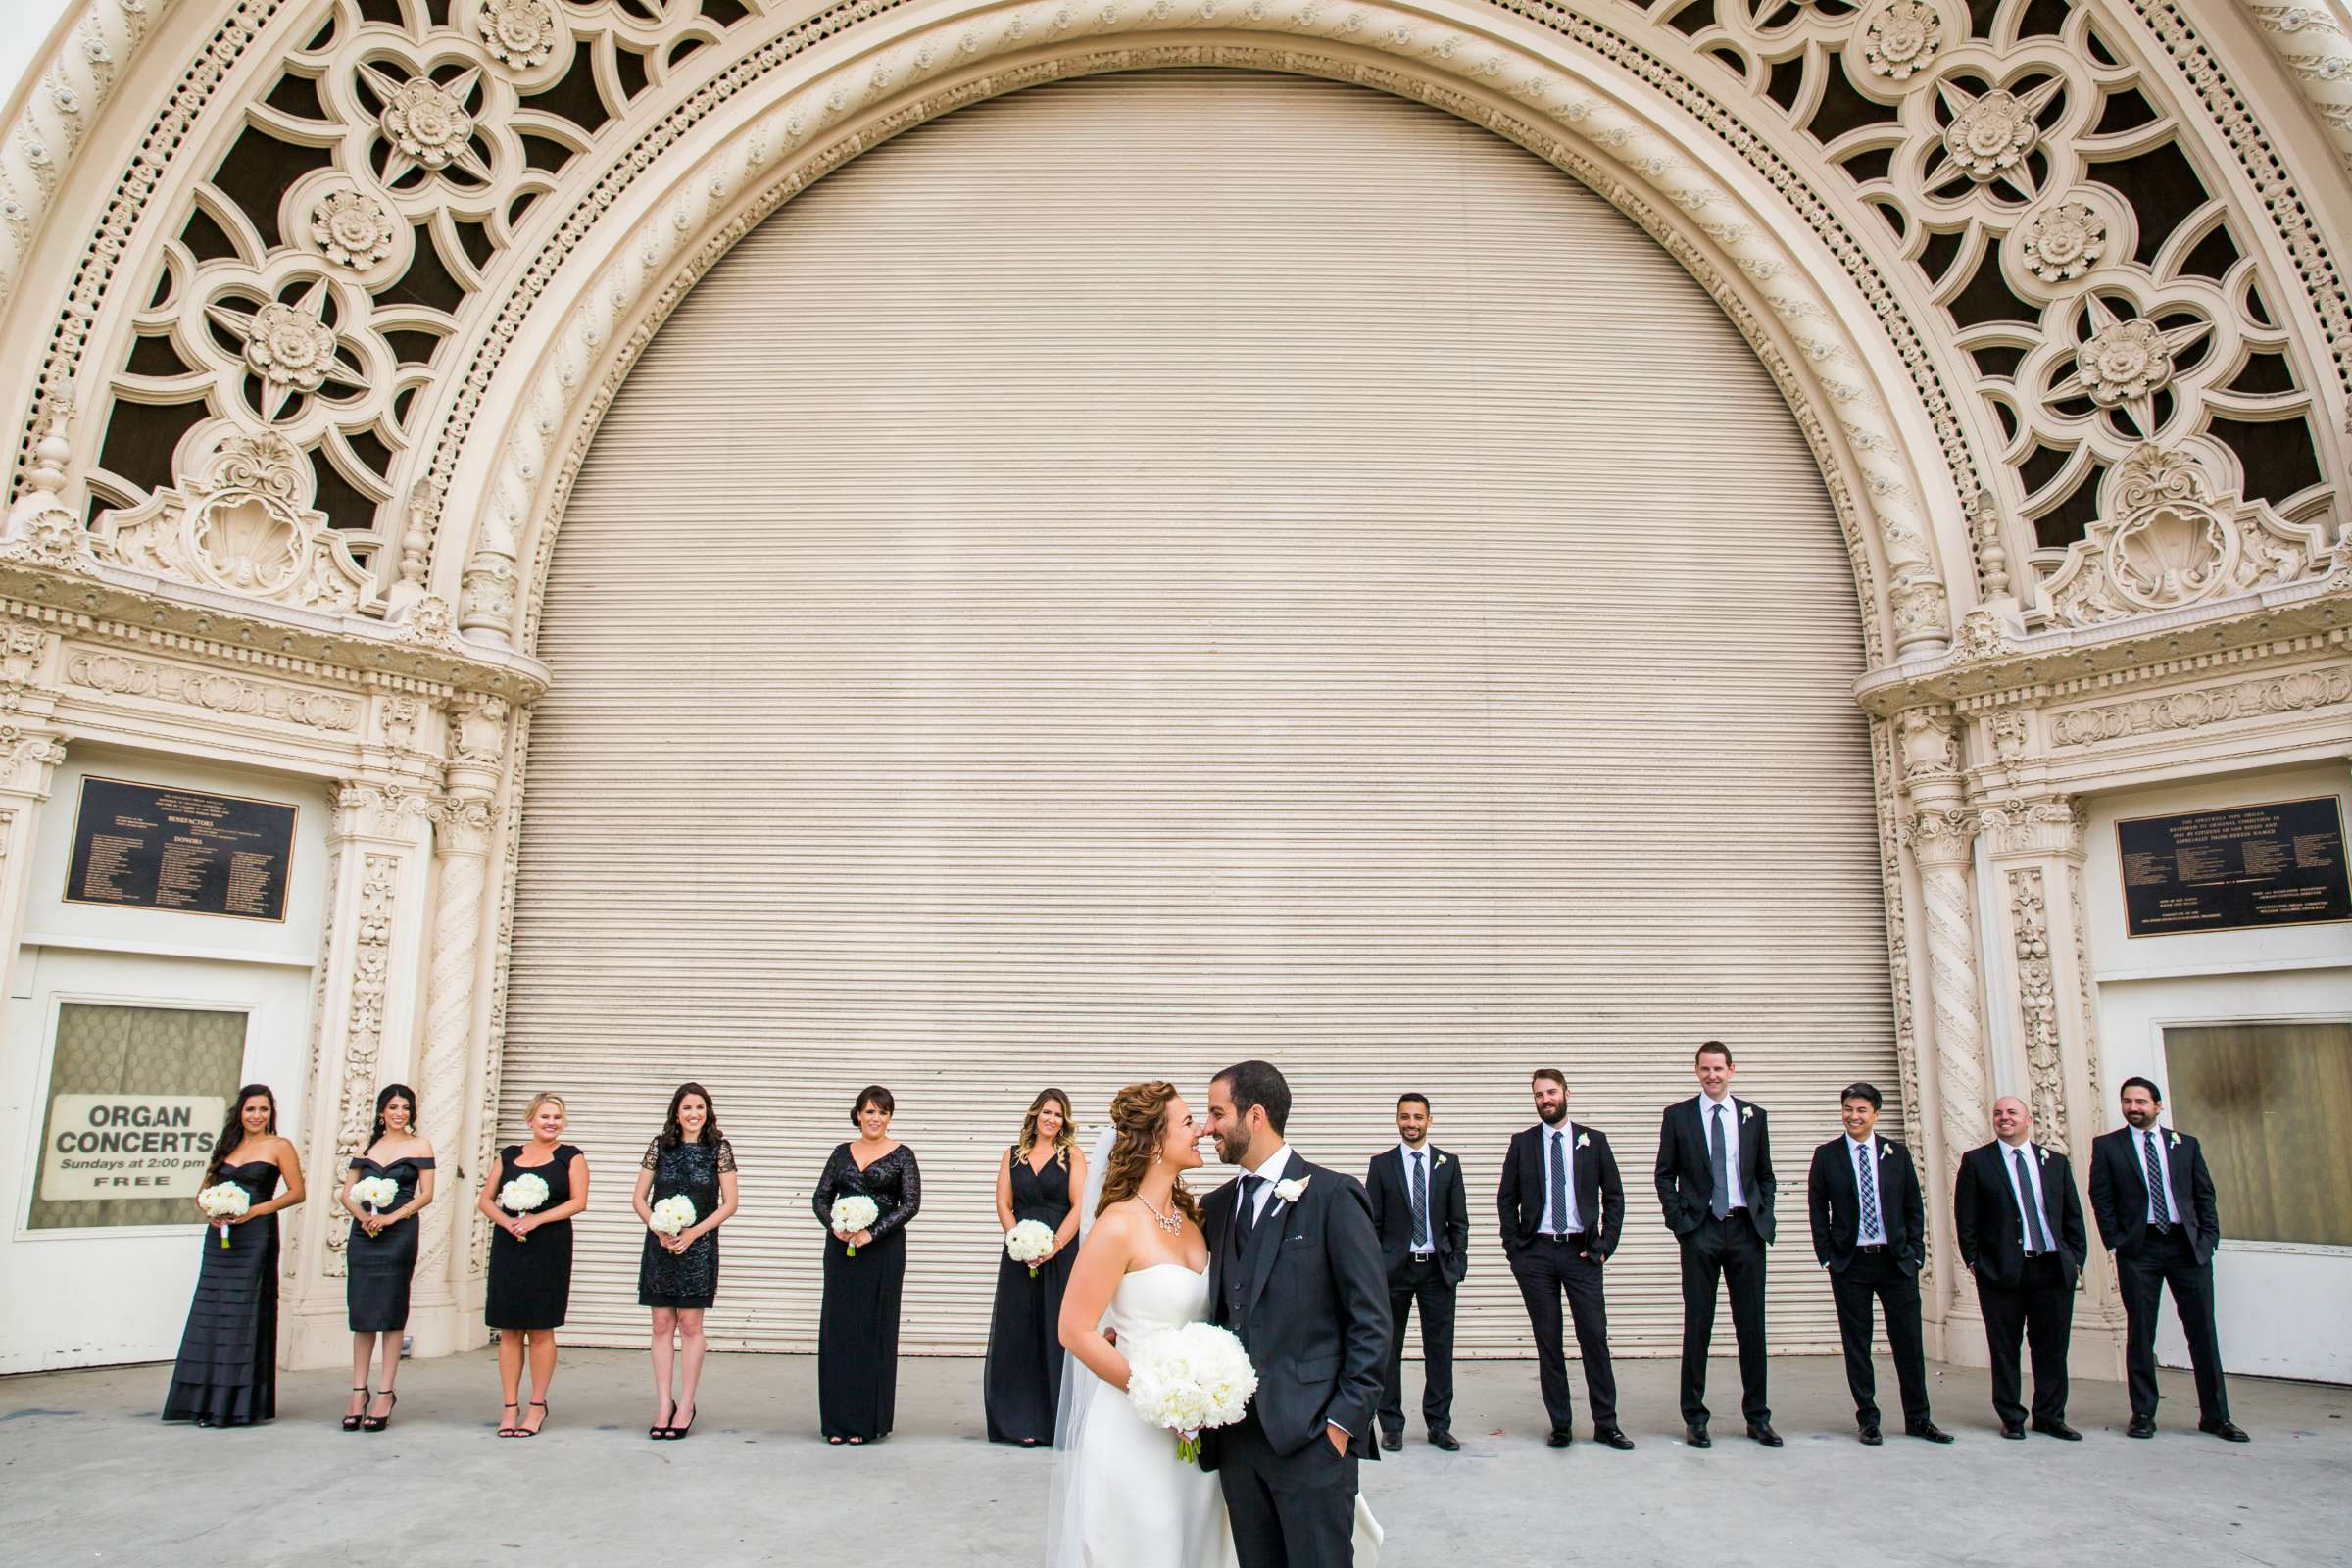 San Diego Museum of Art Wedding coordinated by First Comes Love Weddings & Events, Ruthie and Larry Wedding Photo #236760 by True Photography